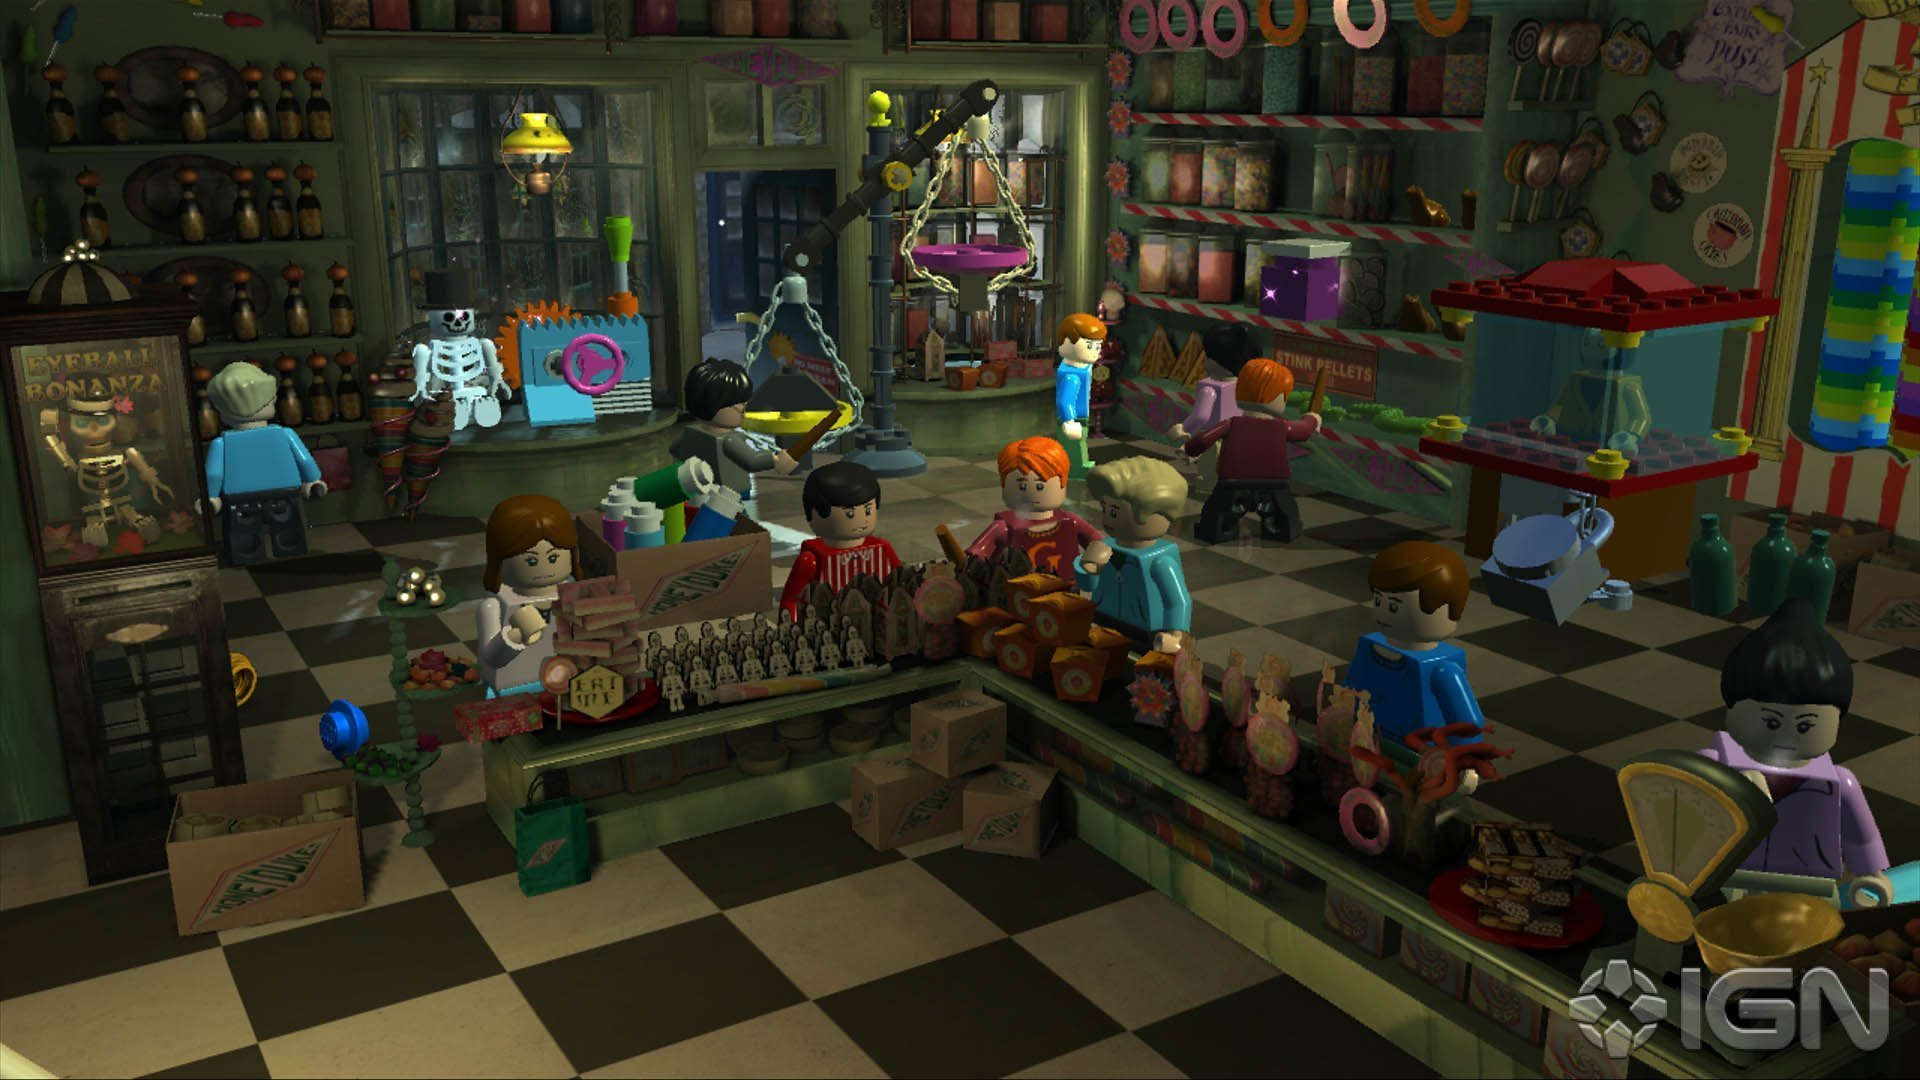 lego harry potter years 1 4 images lego harry potter years 1 4 hd wallpaper and background. Black Bedroom Furniture Sets. Home Design Ideas